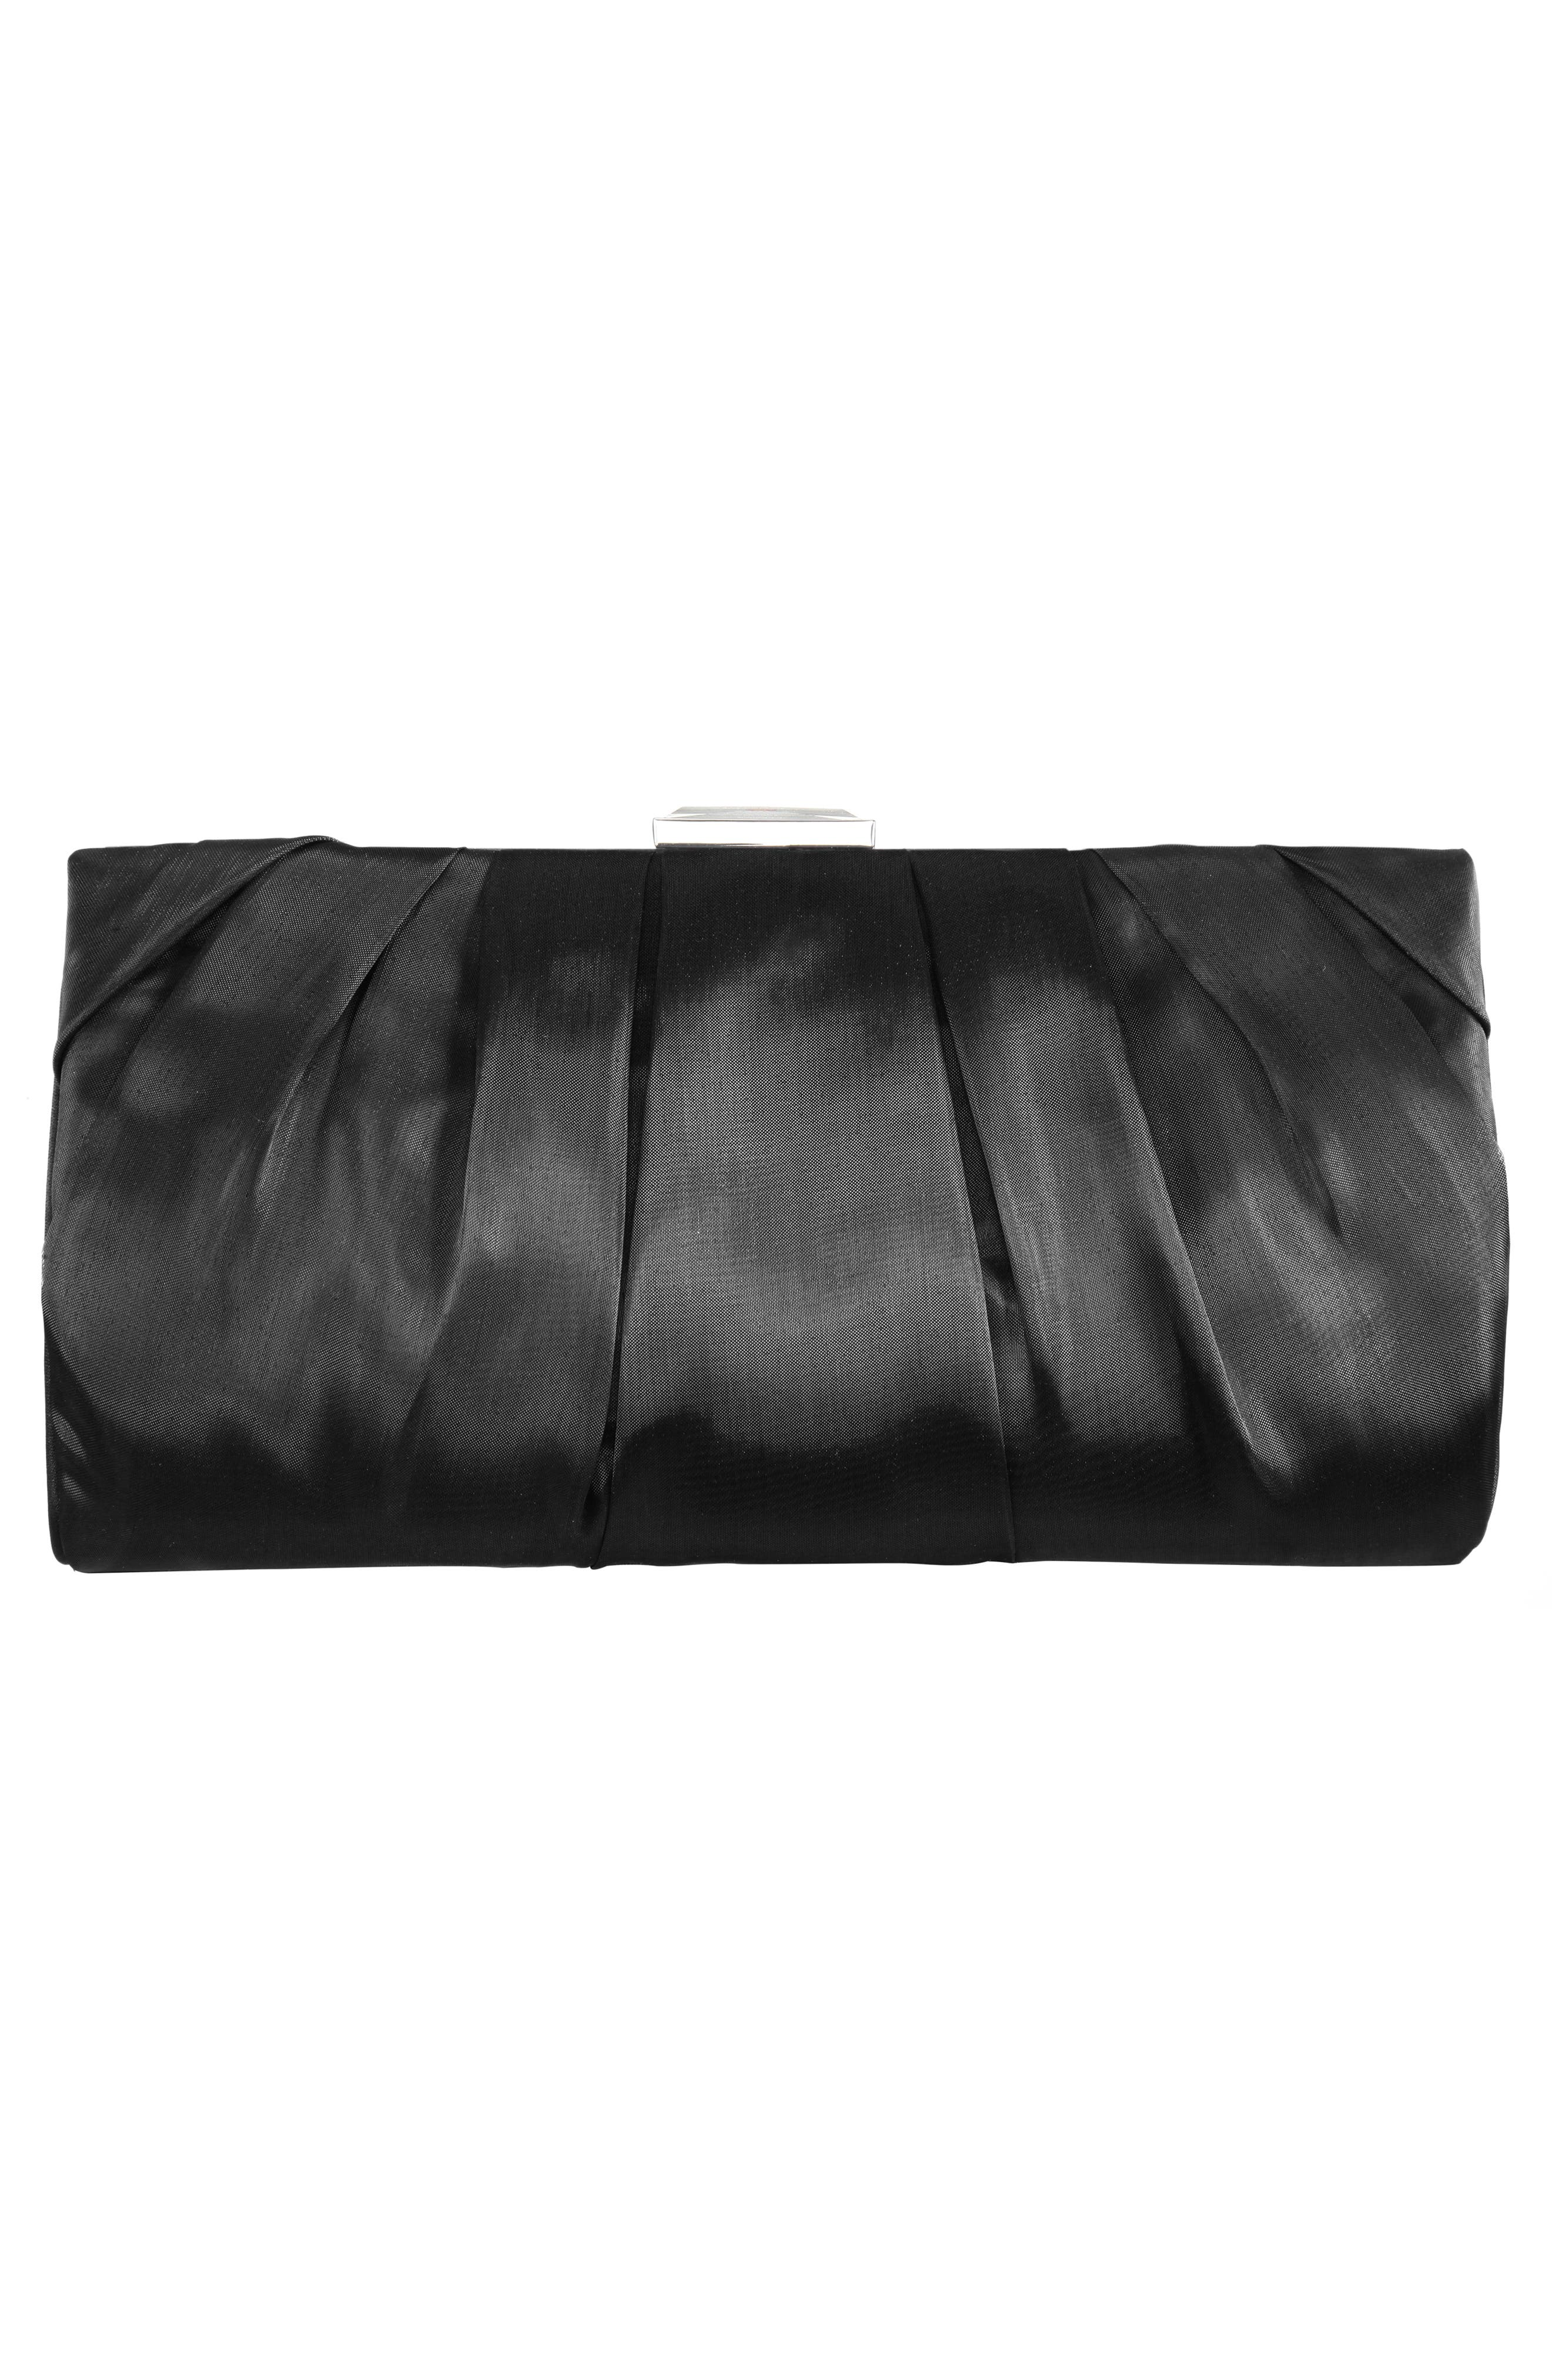 NINA, Crystal Clasp Pleated Clutch, Alternate thumbnail 2, color, BLACK